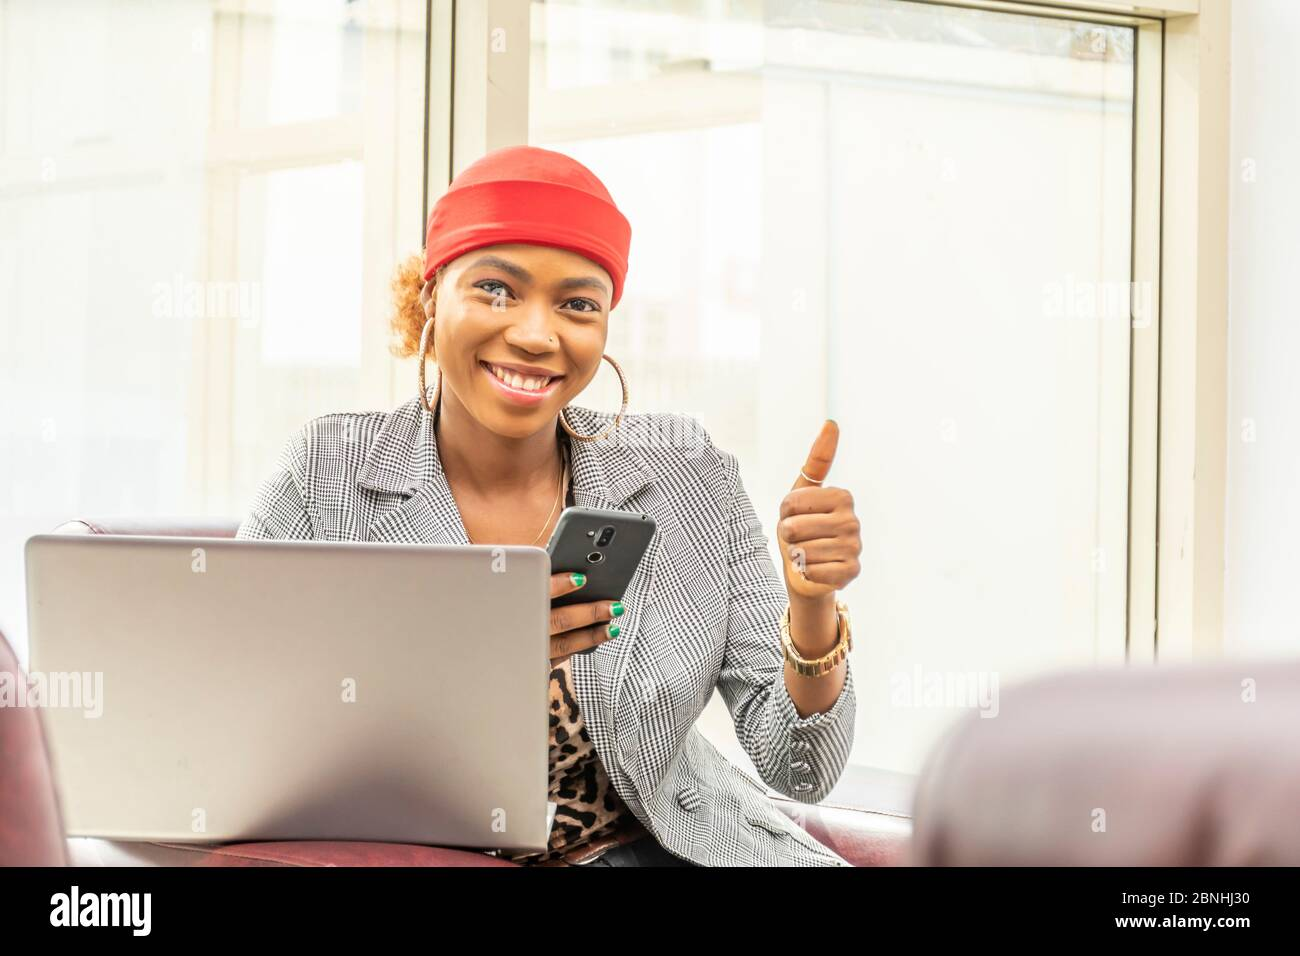 beautiful young african muslim business woman using her laptop computer and smartphone smiling and giving a thumbs up Stock Photo